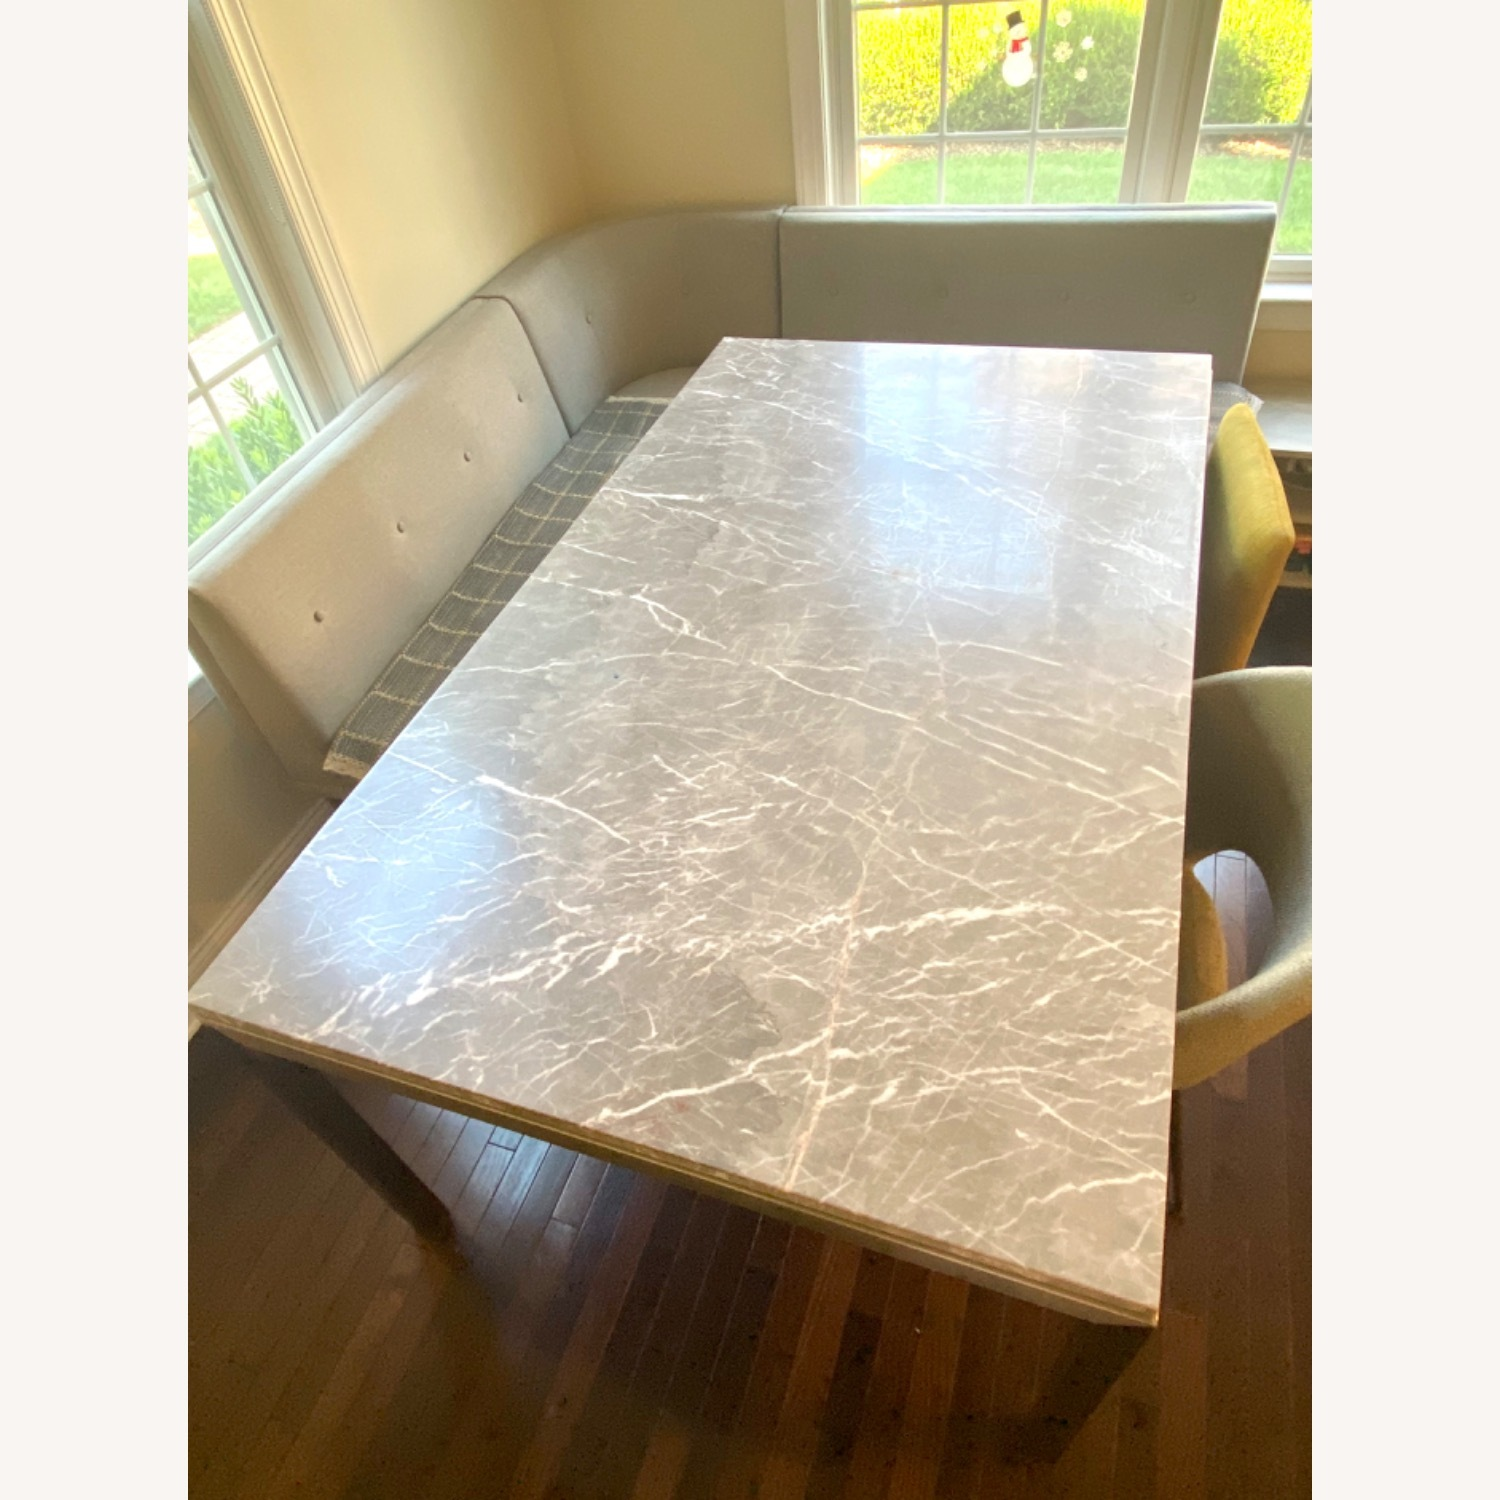 Crate and barrel grey marble dining table - image-2